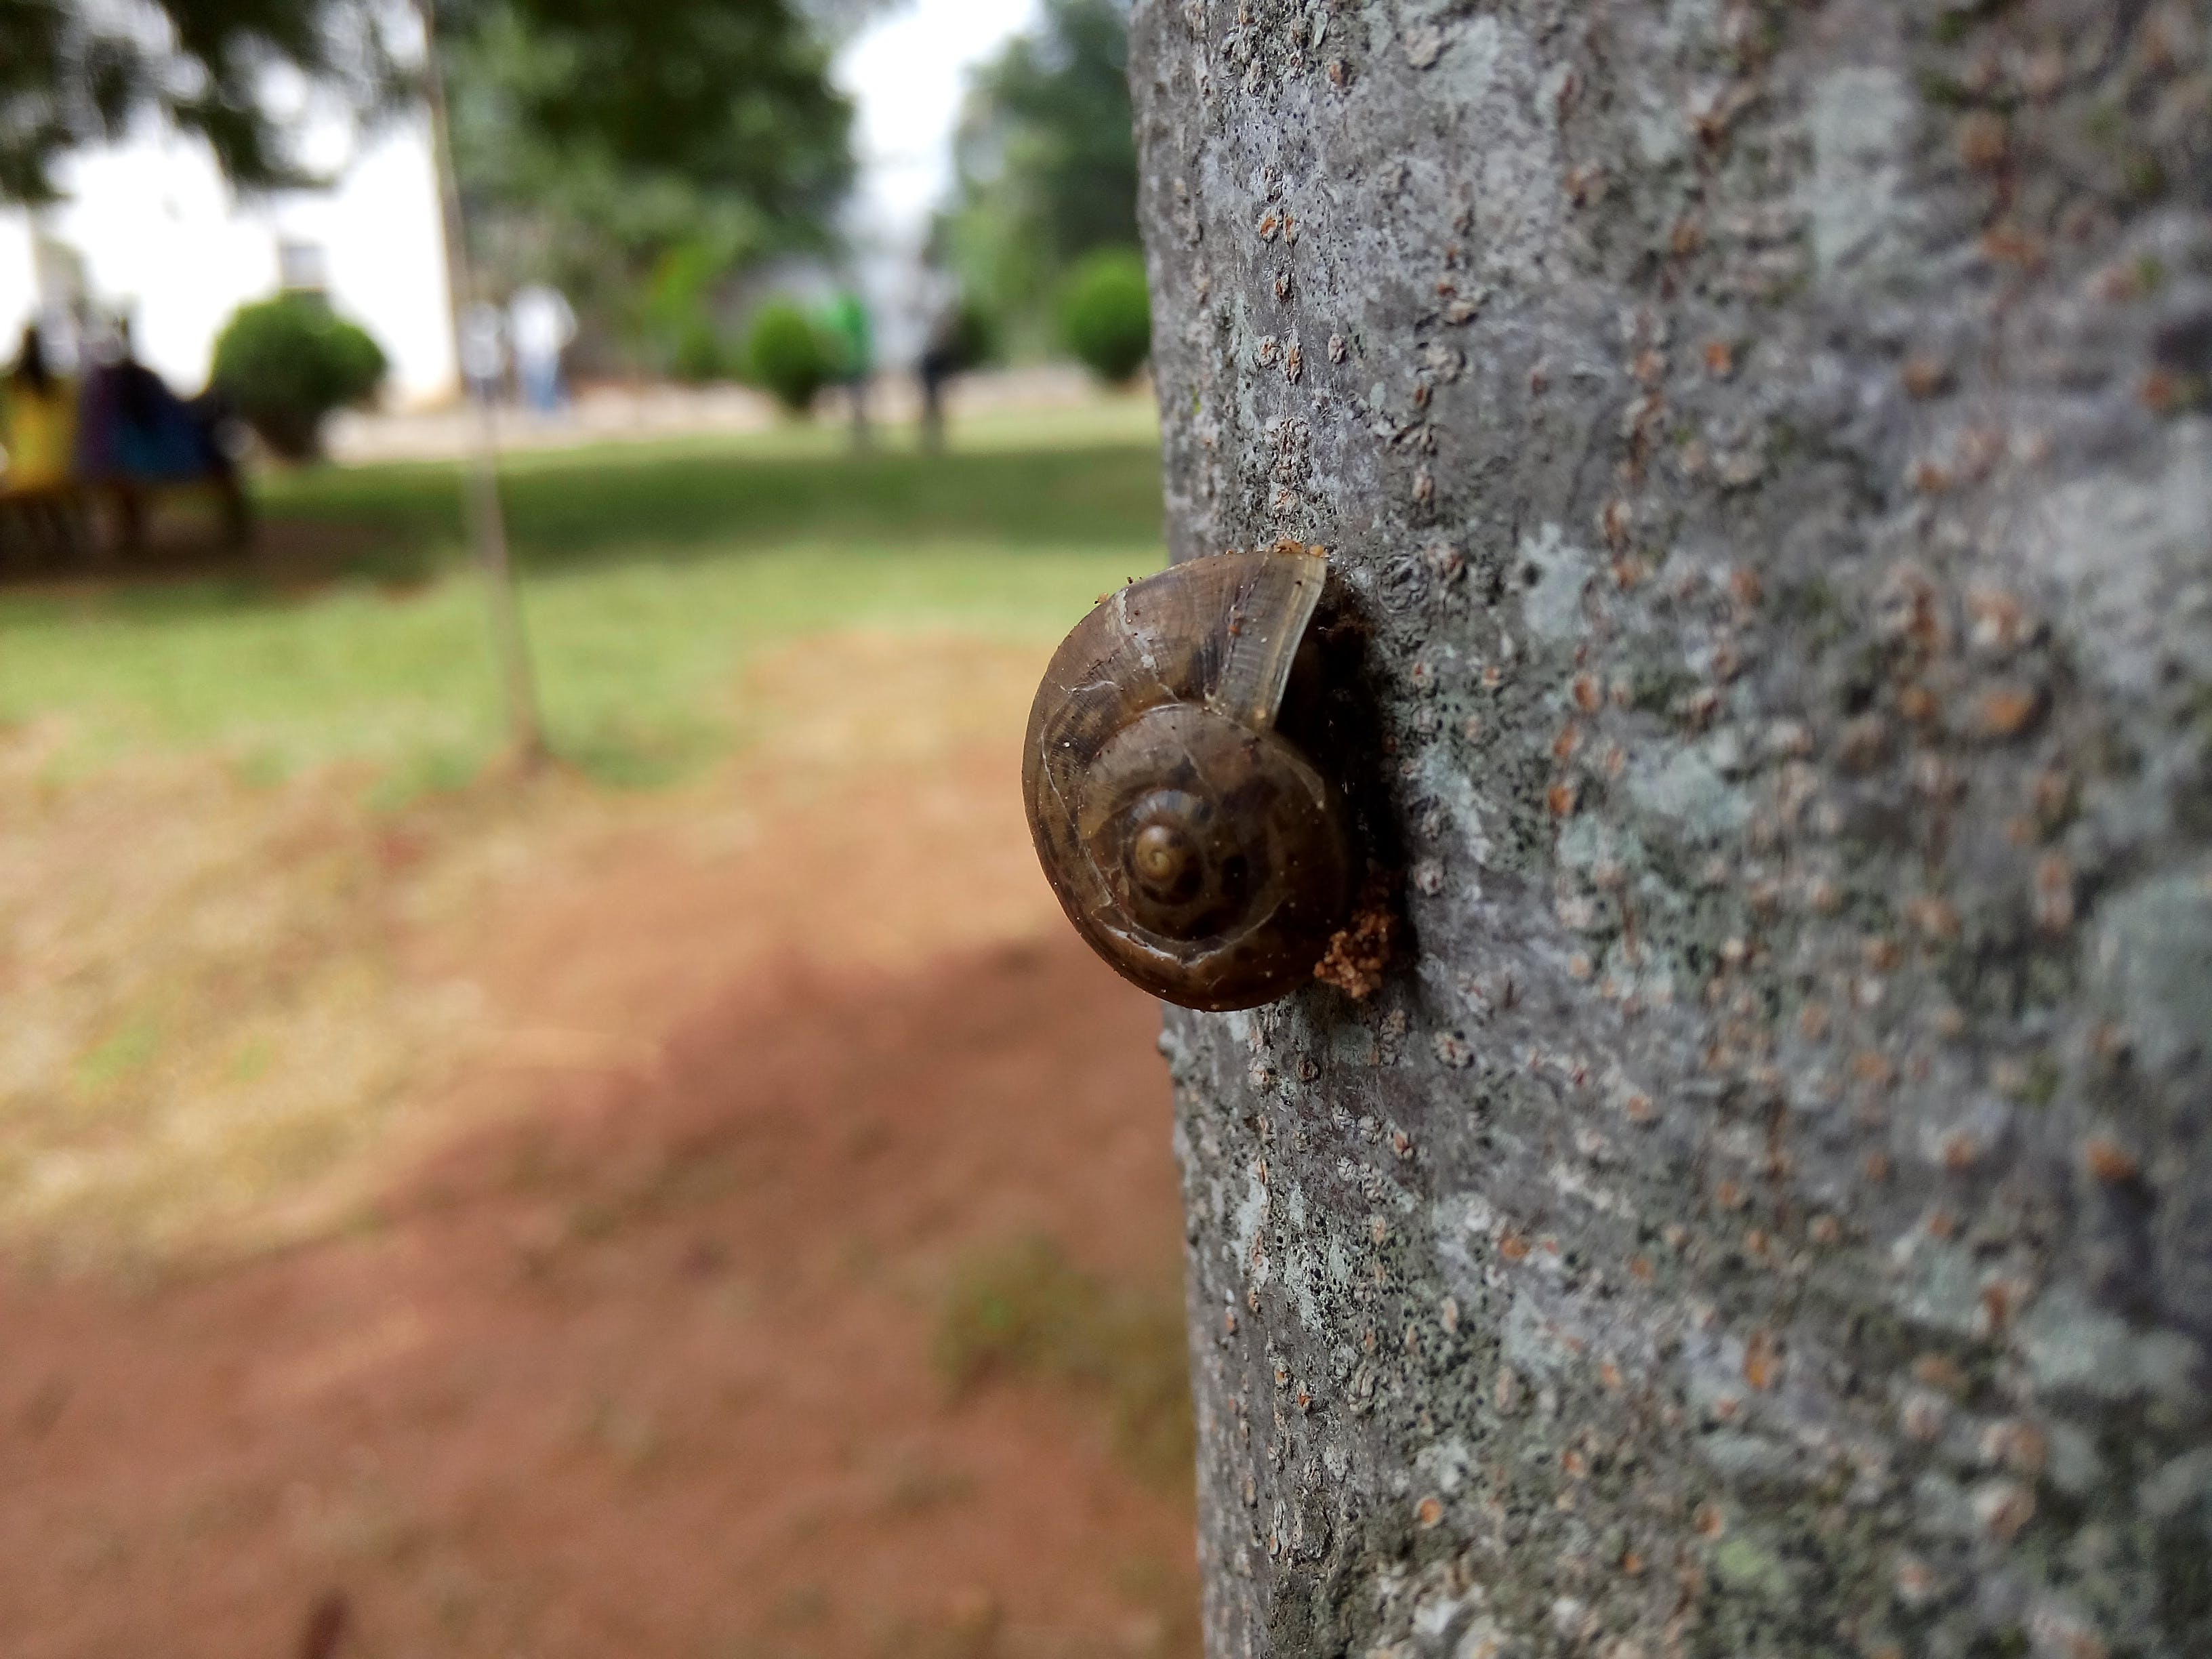 Shallow Focus Photography of Brown Snail on Tree Trunk